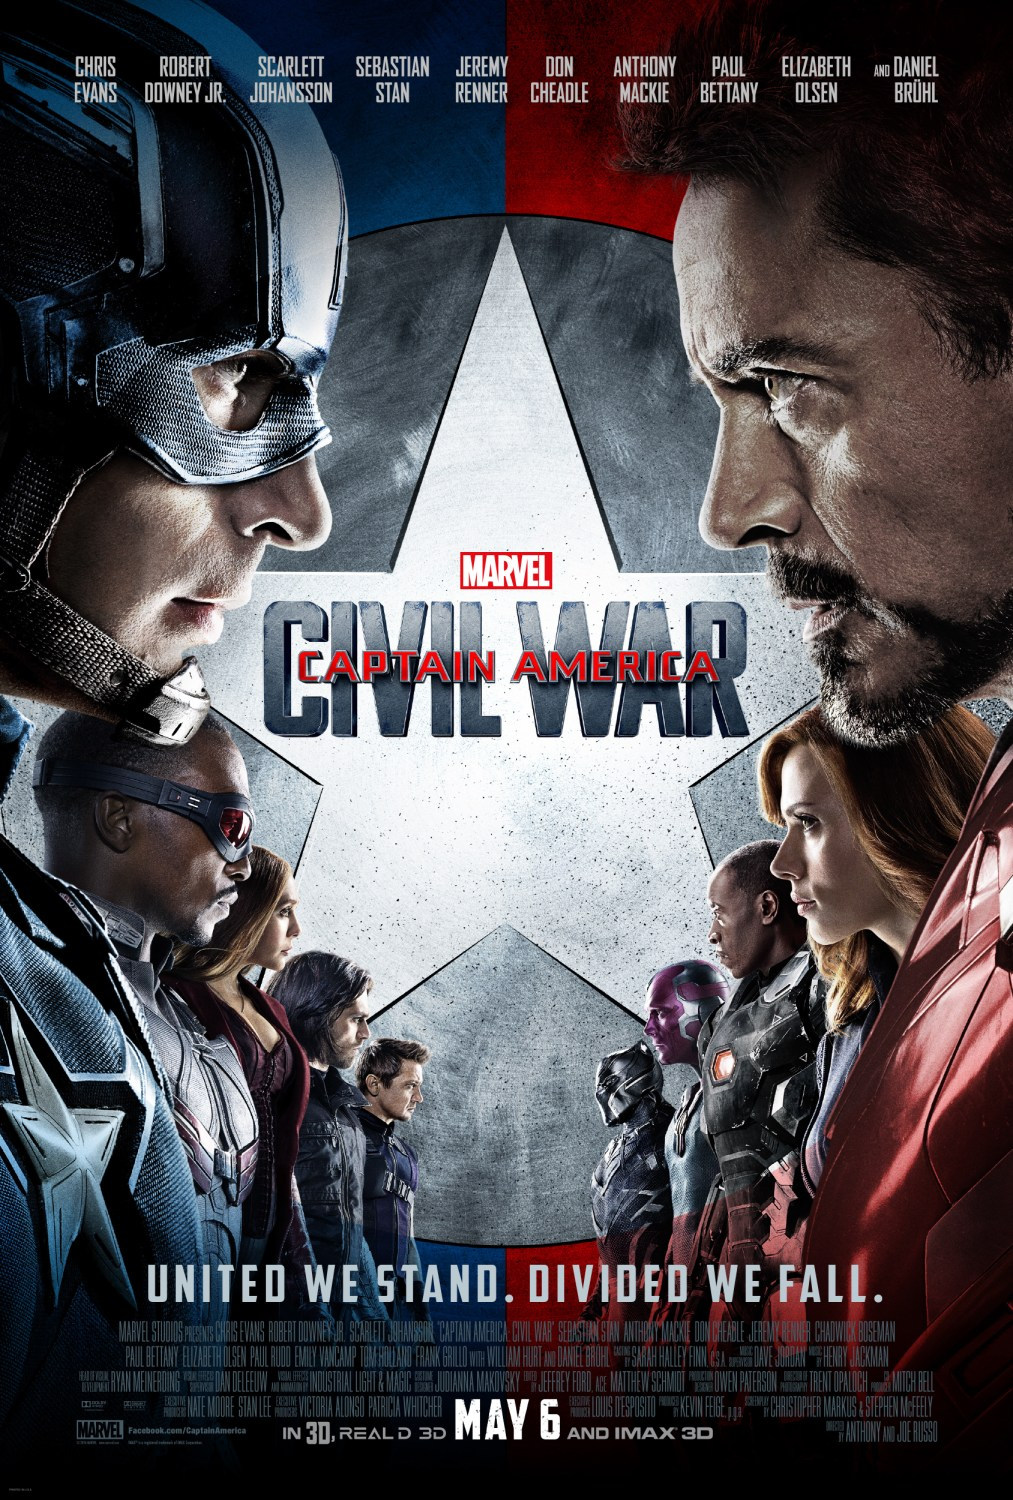 Marvel's Captain America: Civil War Poster and Trailer Are Here #CaptainAmericaCivilWar